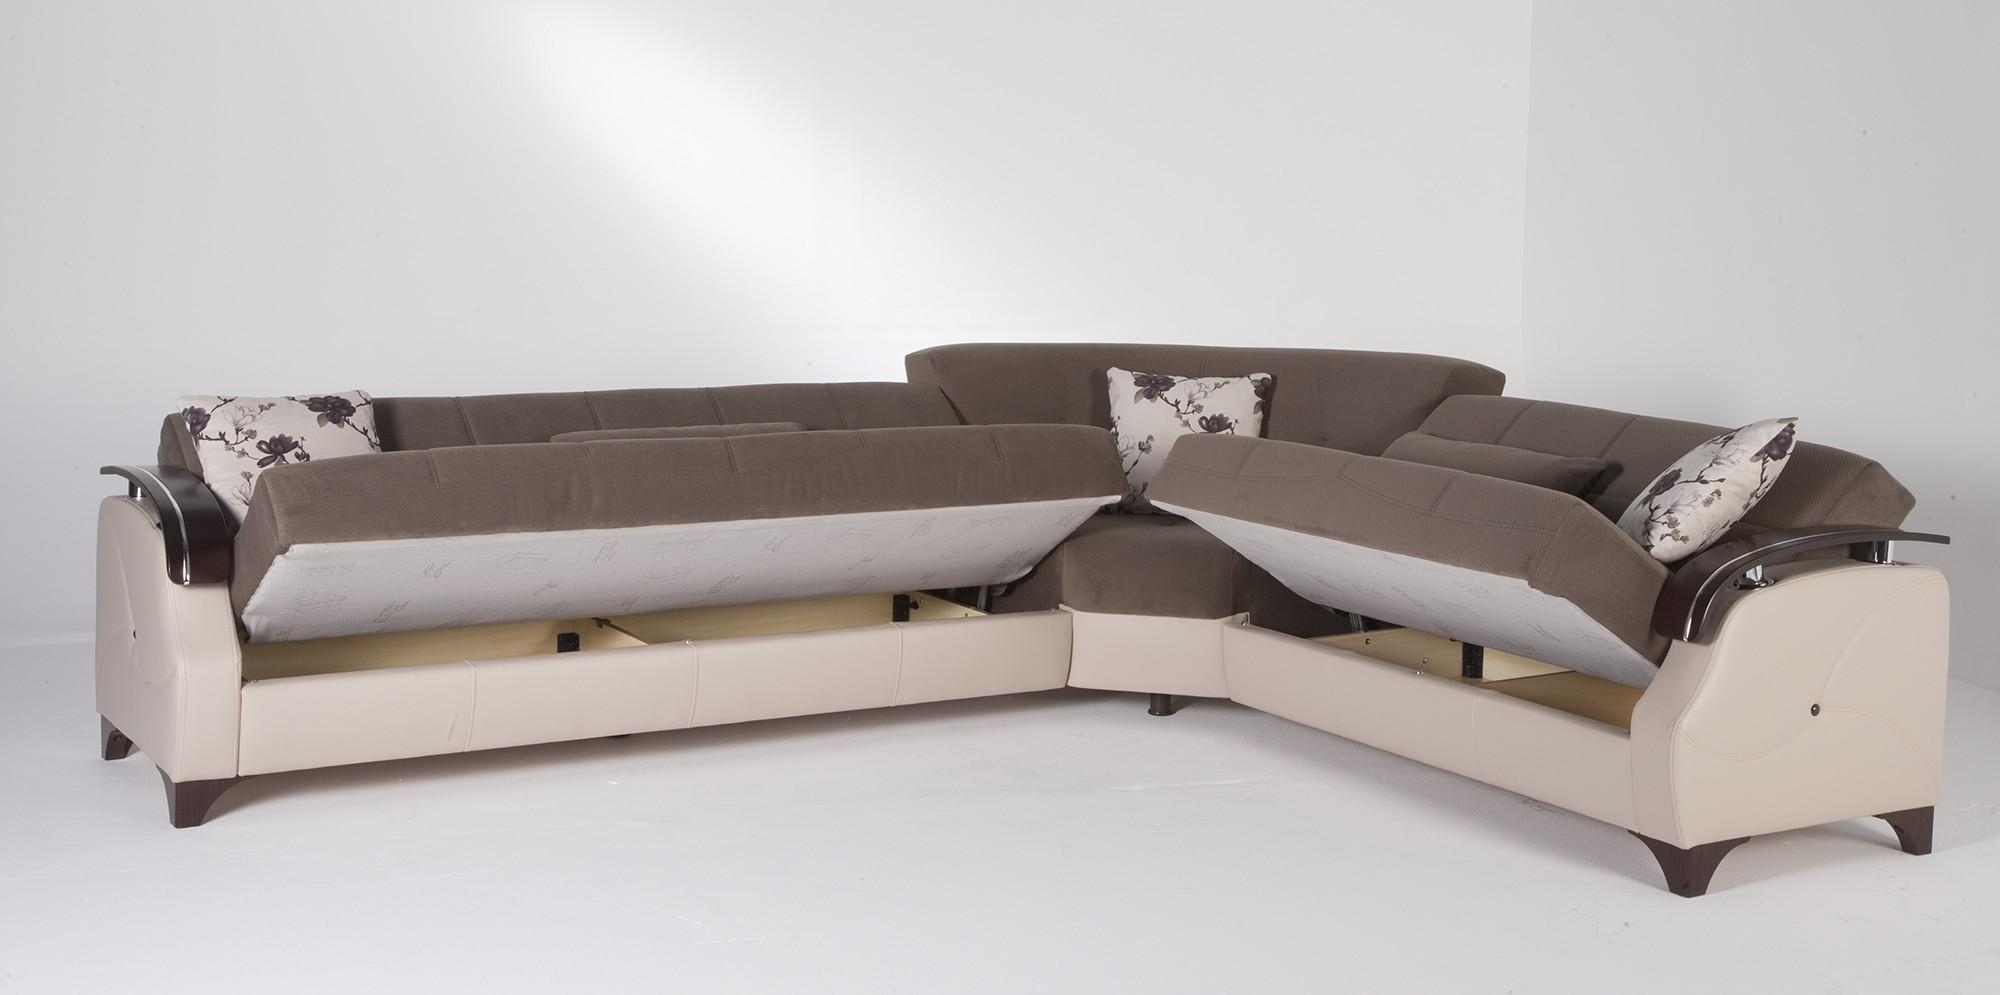 21 Choices of Sectional Sofas With Sleeper and Chaise